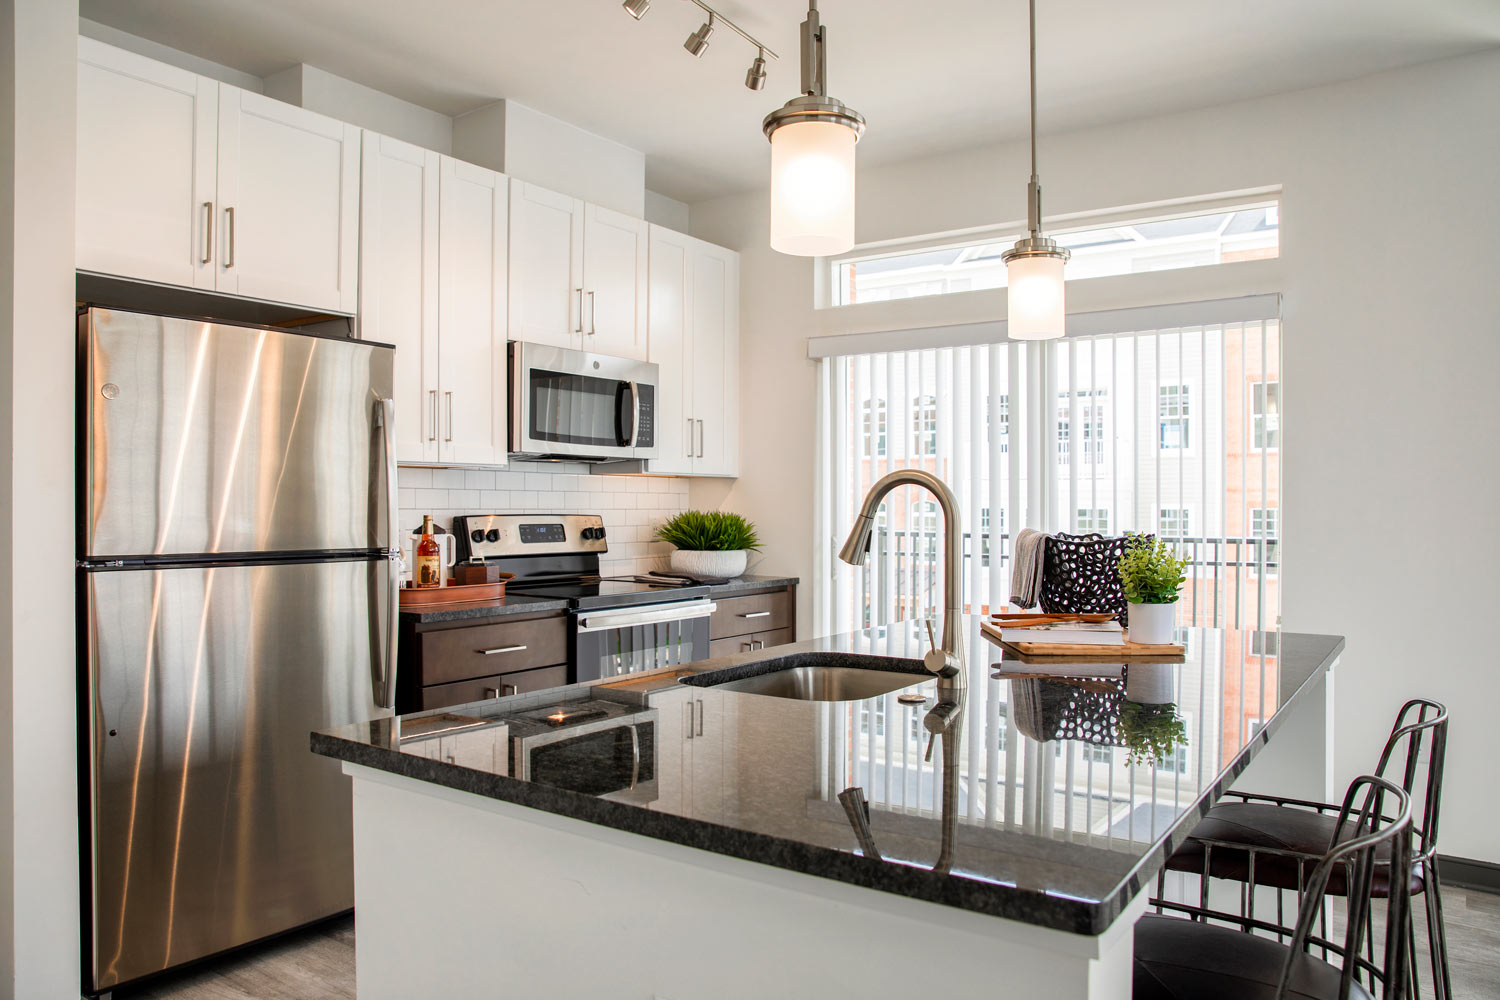 kitchen at Dartmoor Place at Oxford Square apartments in Hanover MD with stainless steel appliances, white cabinets and a black marble counter top and island